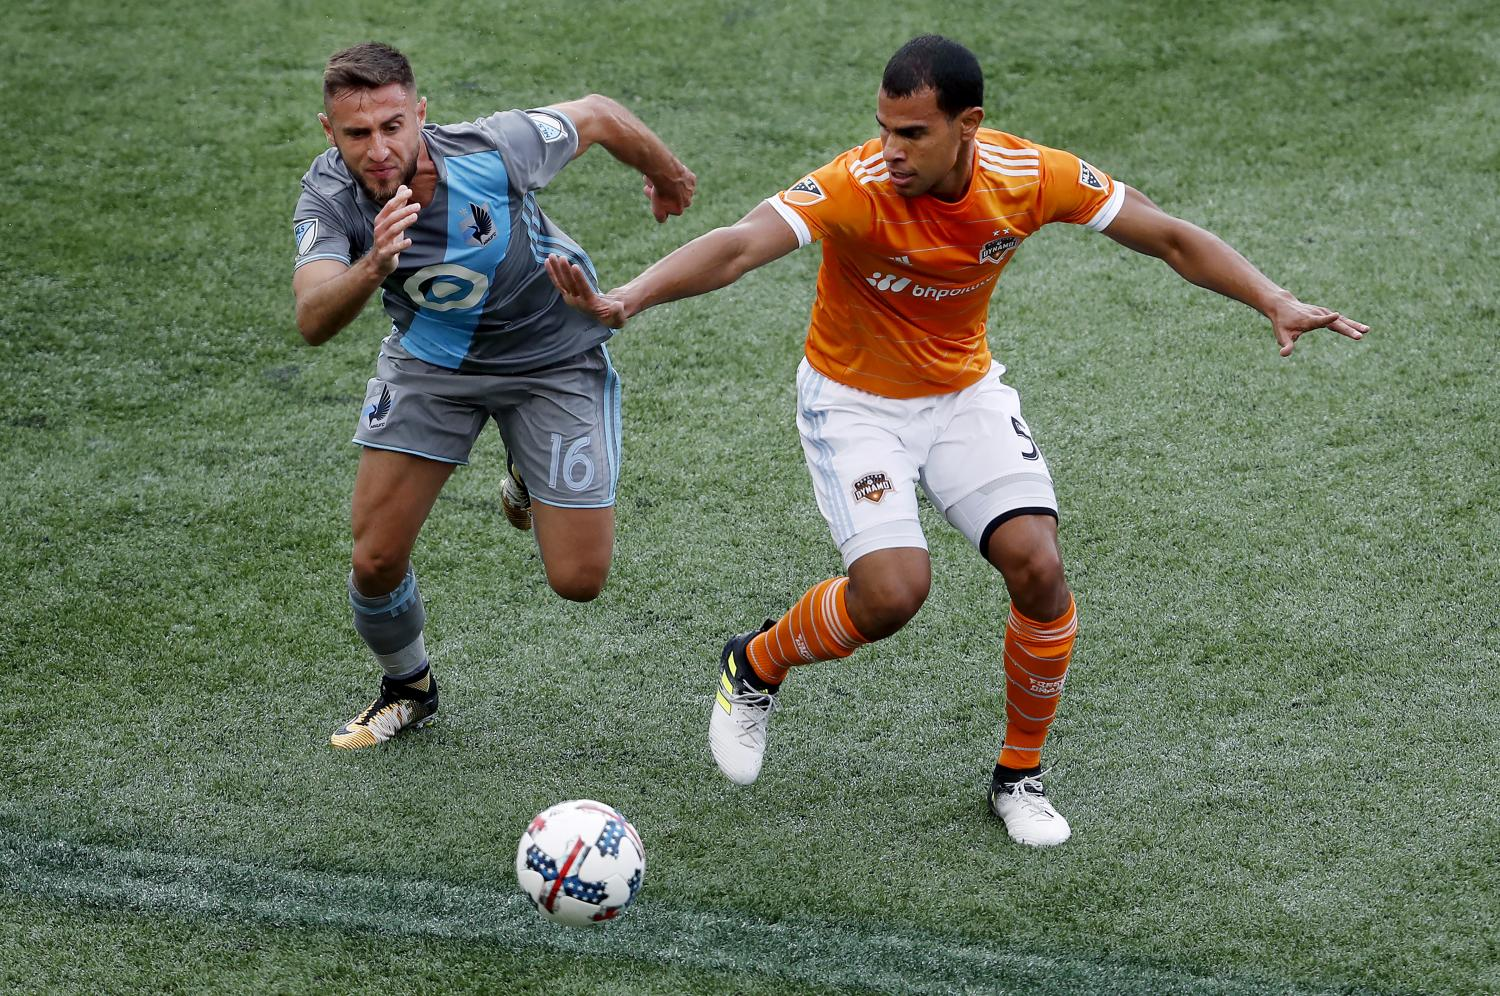 Minnesota United's Bashkim Kadrii (16) and Houston Dynamo's Juan Cabezas (5) vie for the ball. (Carlos Gonzalez/AP)